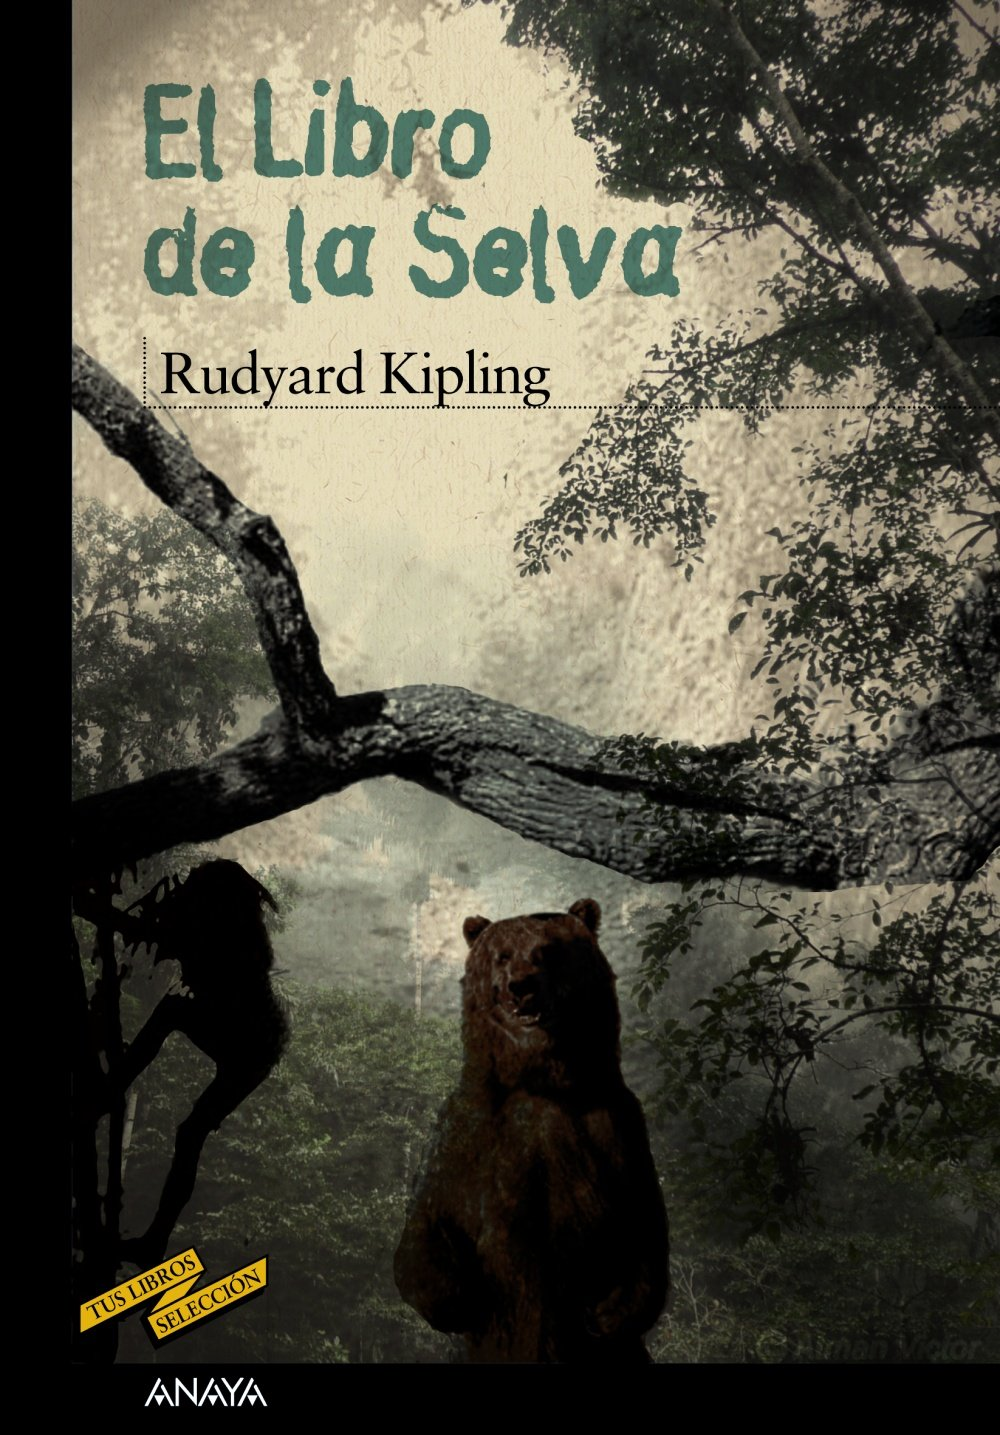 Amazon.com: El libro de la selva / The Jungle Book (Tus ...